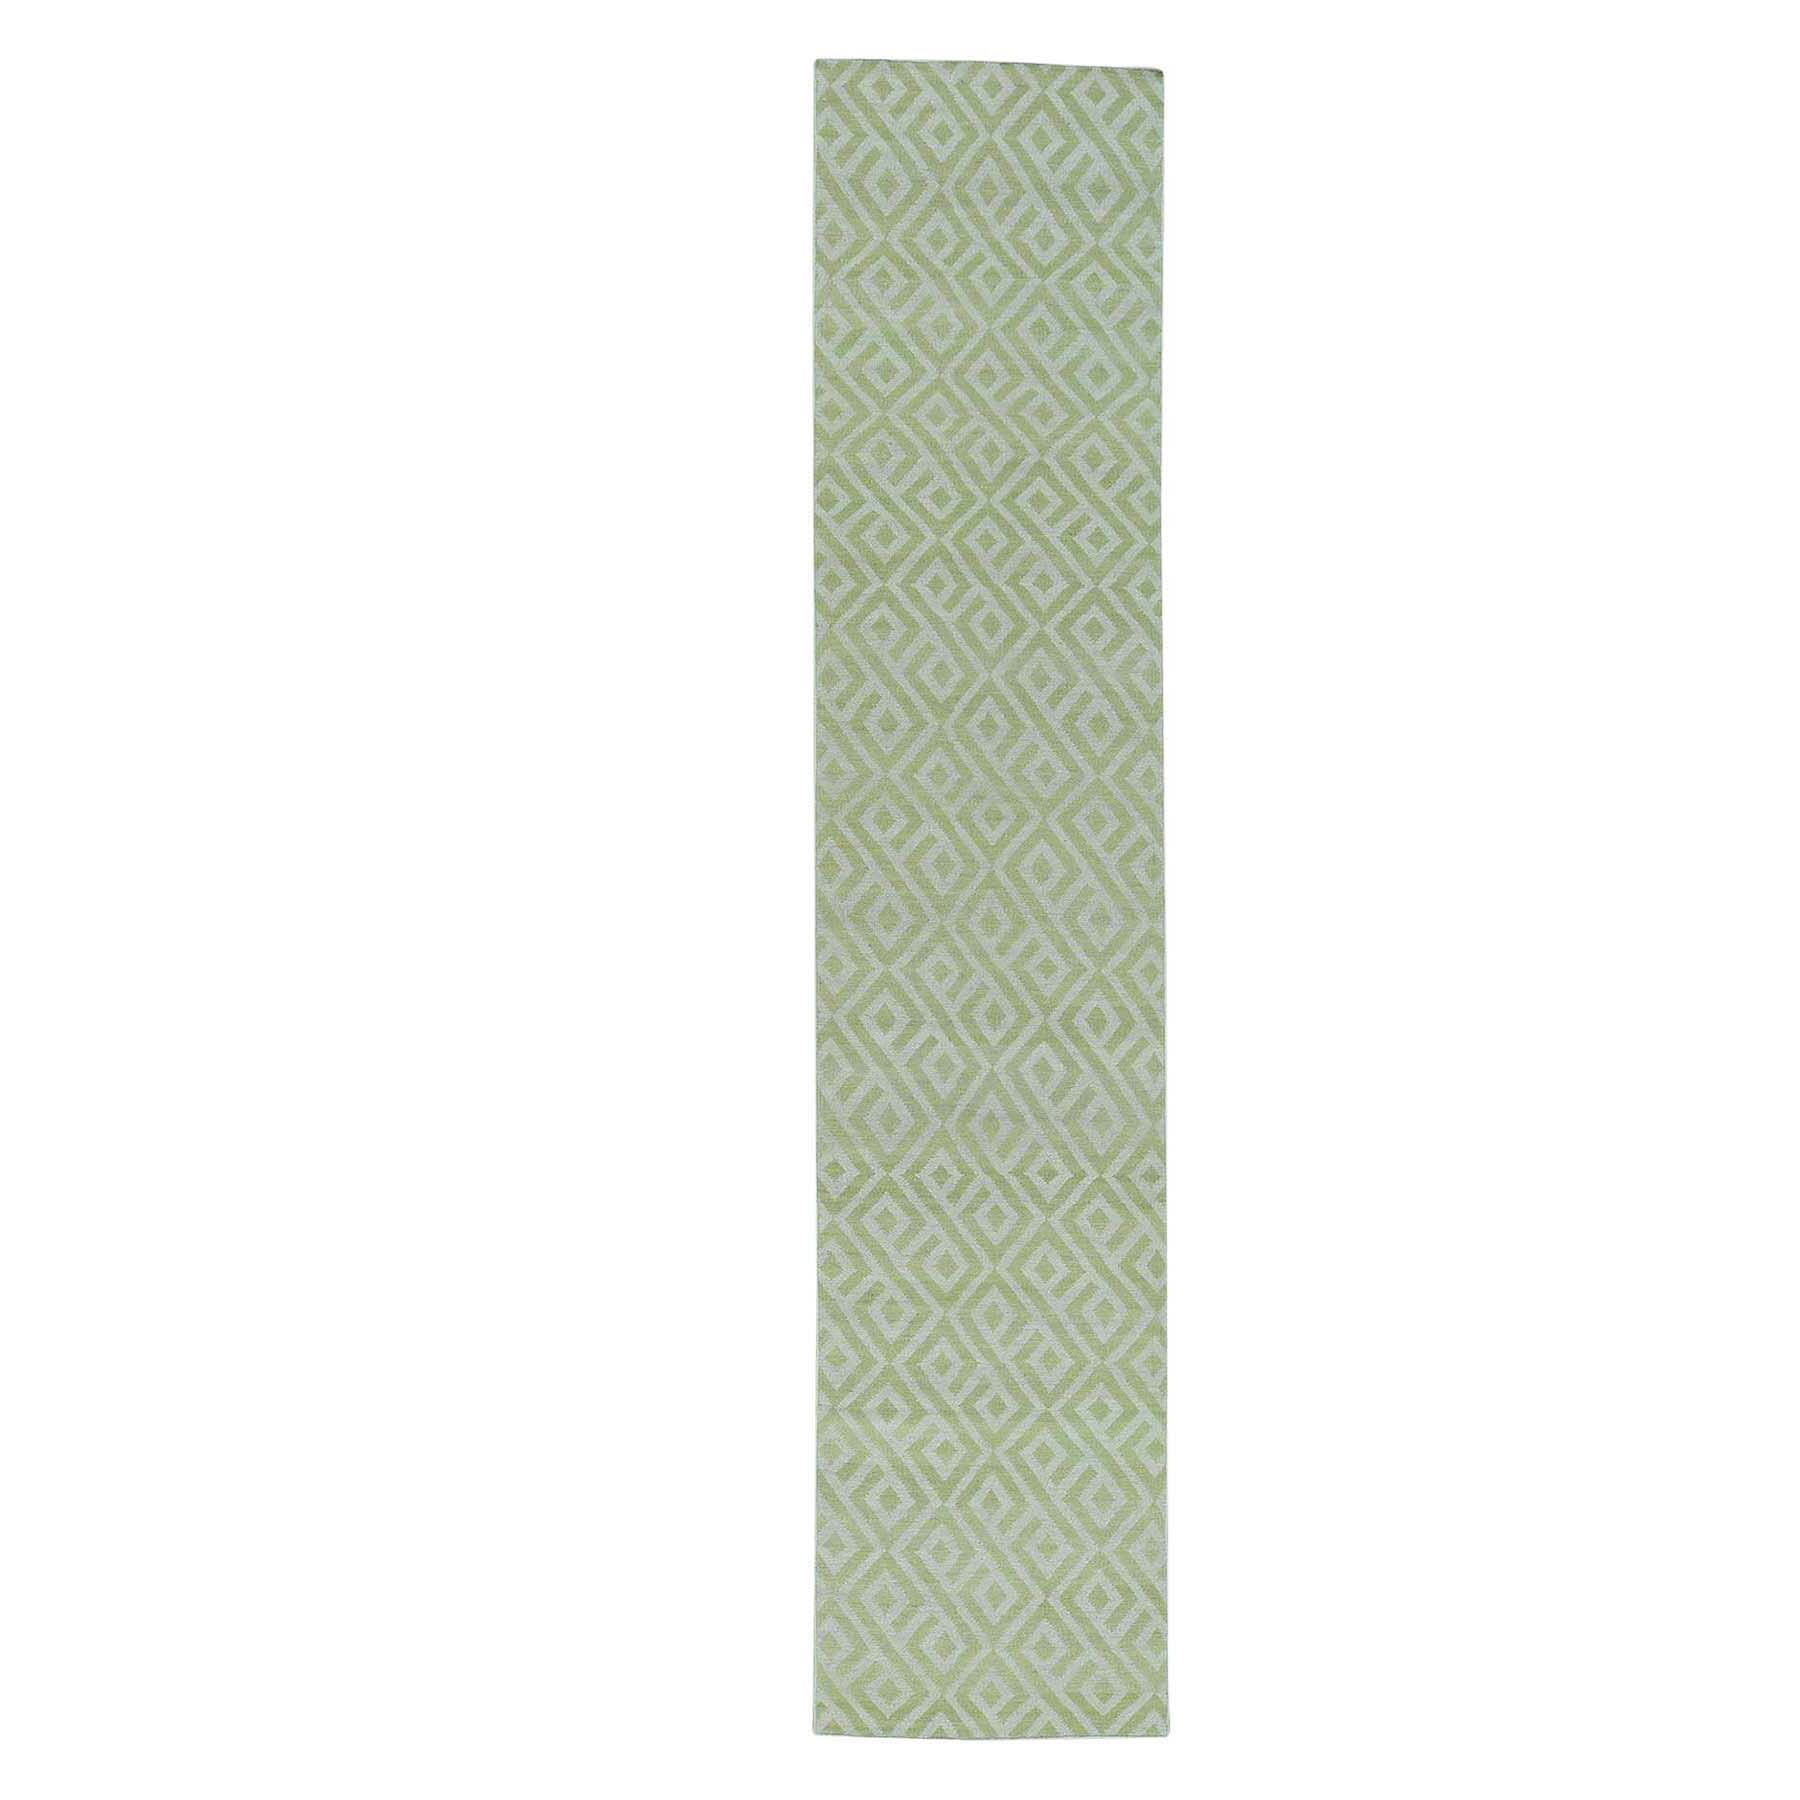 Flat Weave Reversible Durie Kilim Hand-Knotted Green Area Rug